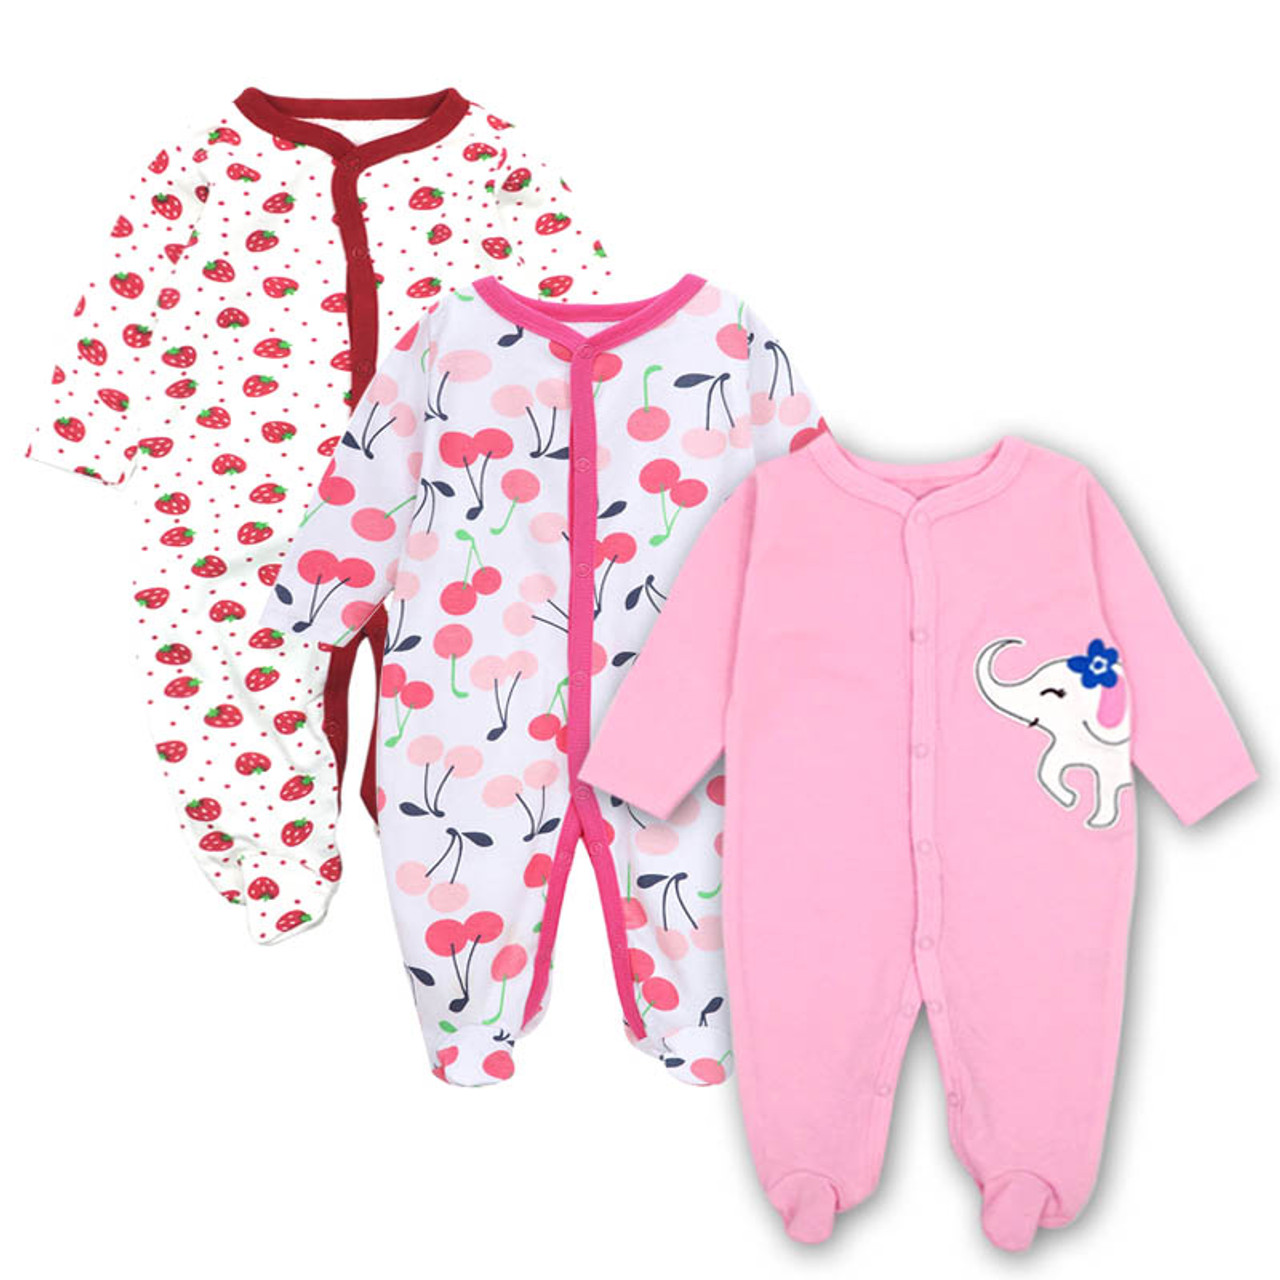 381f38435f39c ... Baby Clothing Newborn jumpsuits Baby Boy Girl Romper Clothes Long  Sleeve Infant Product 2018 NewBaby Clothes ...